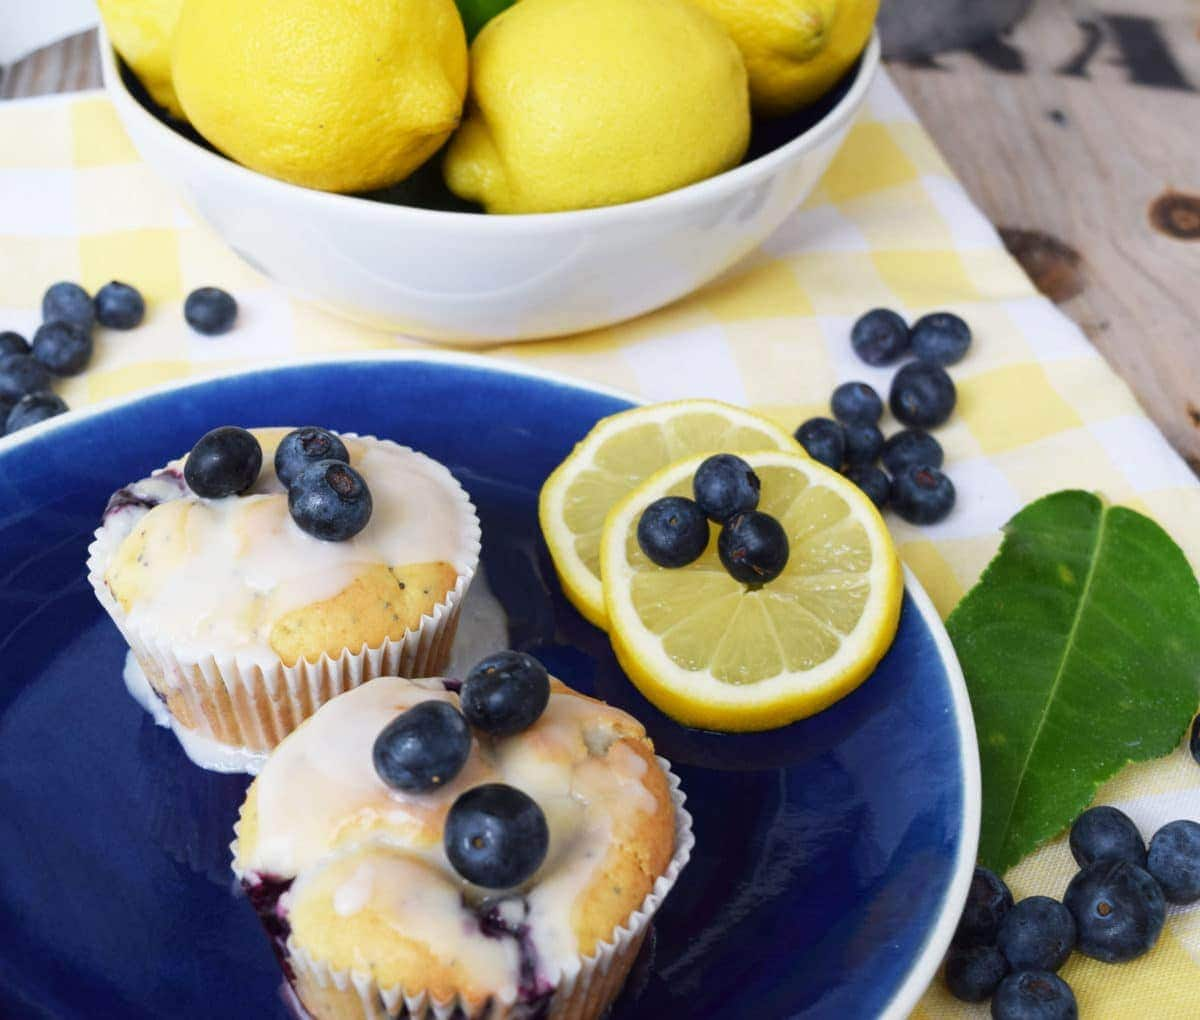 Lemon & Blueberry Poppy Seed Muffins